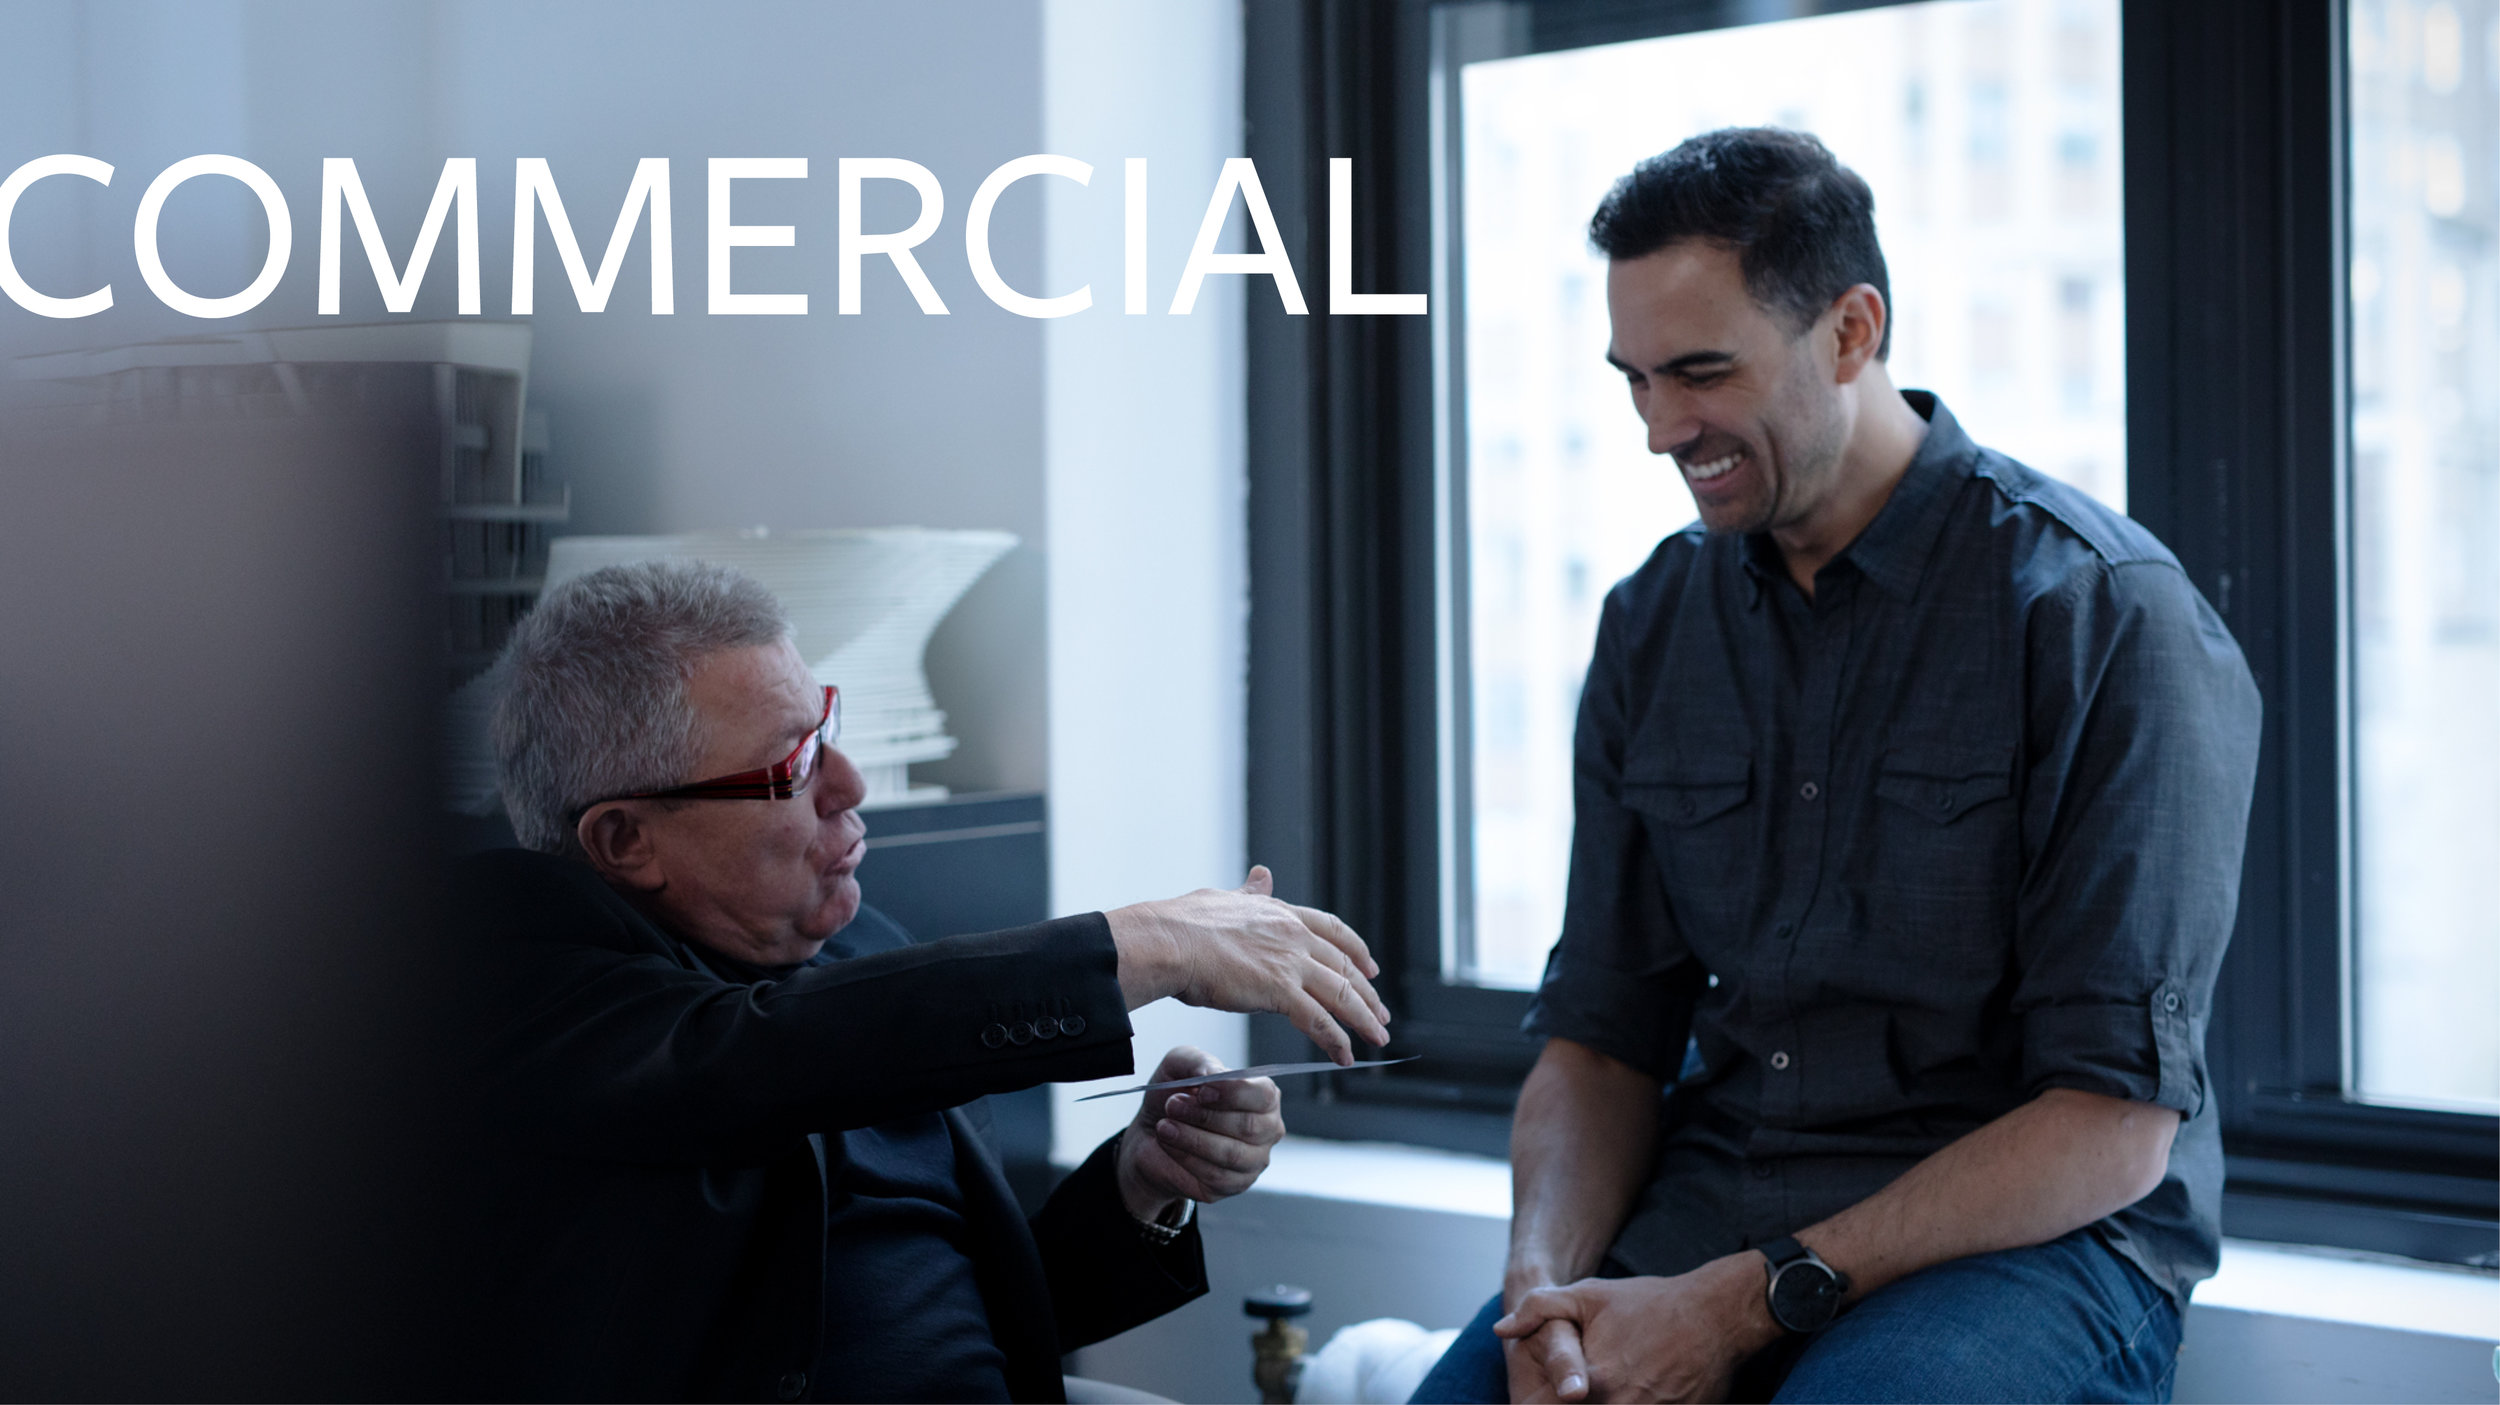 commercial_titular.jpg